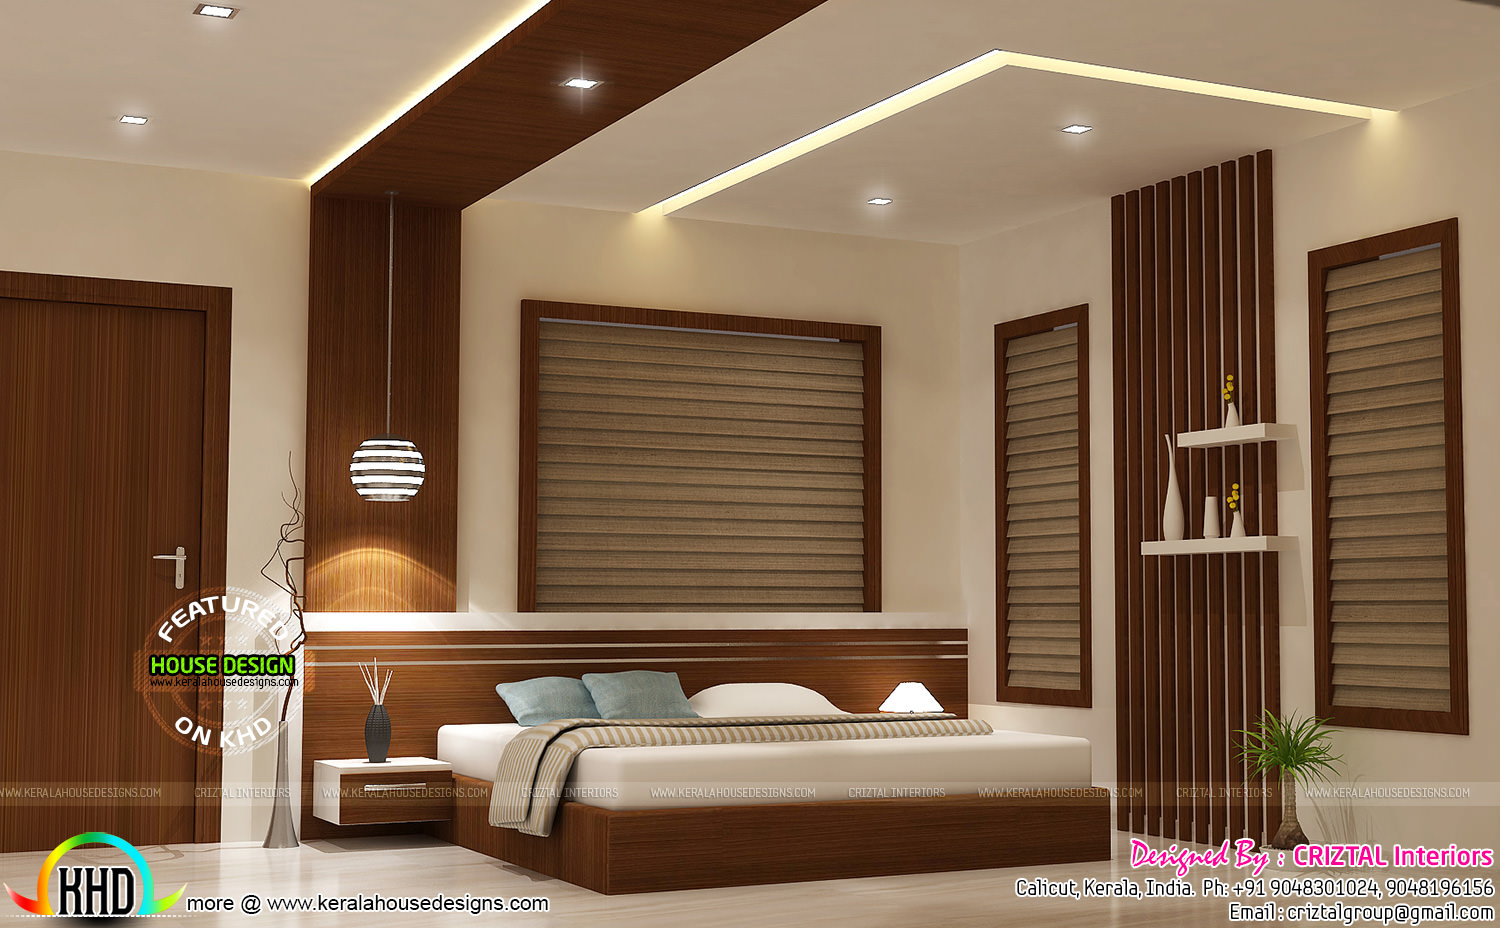 Bedroom dining hall and living interior kerala home for Bathroom interior design kerala